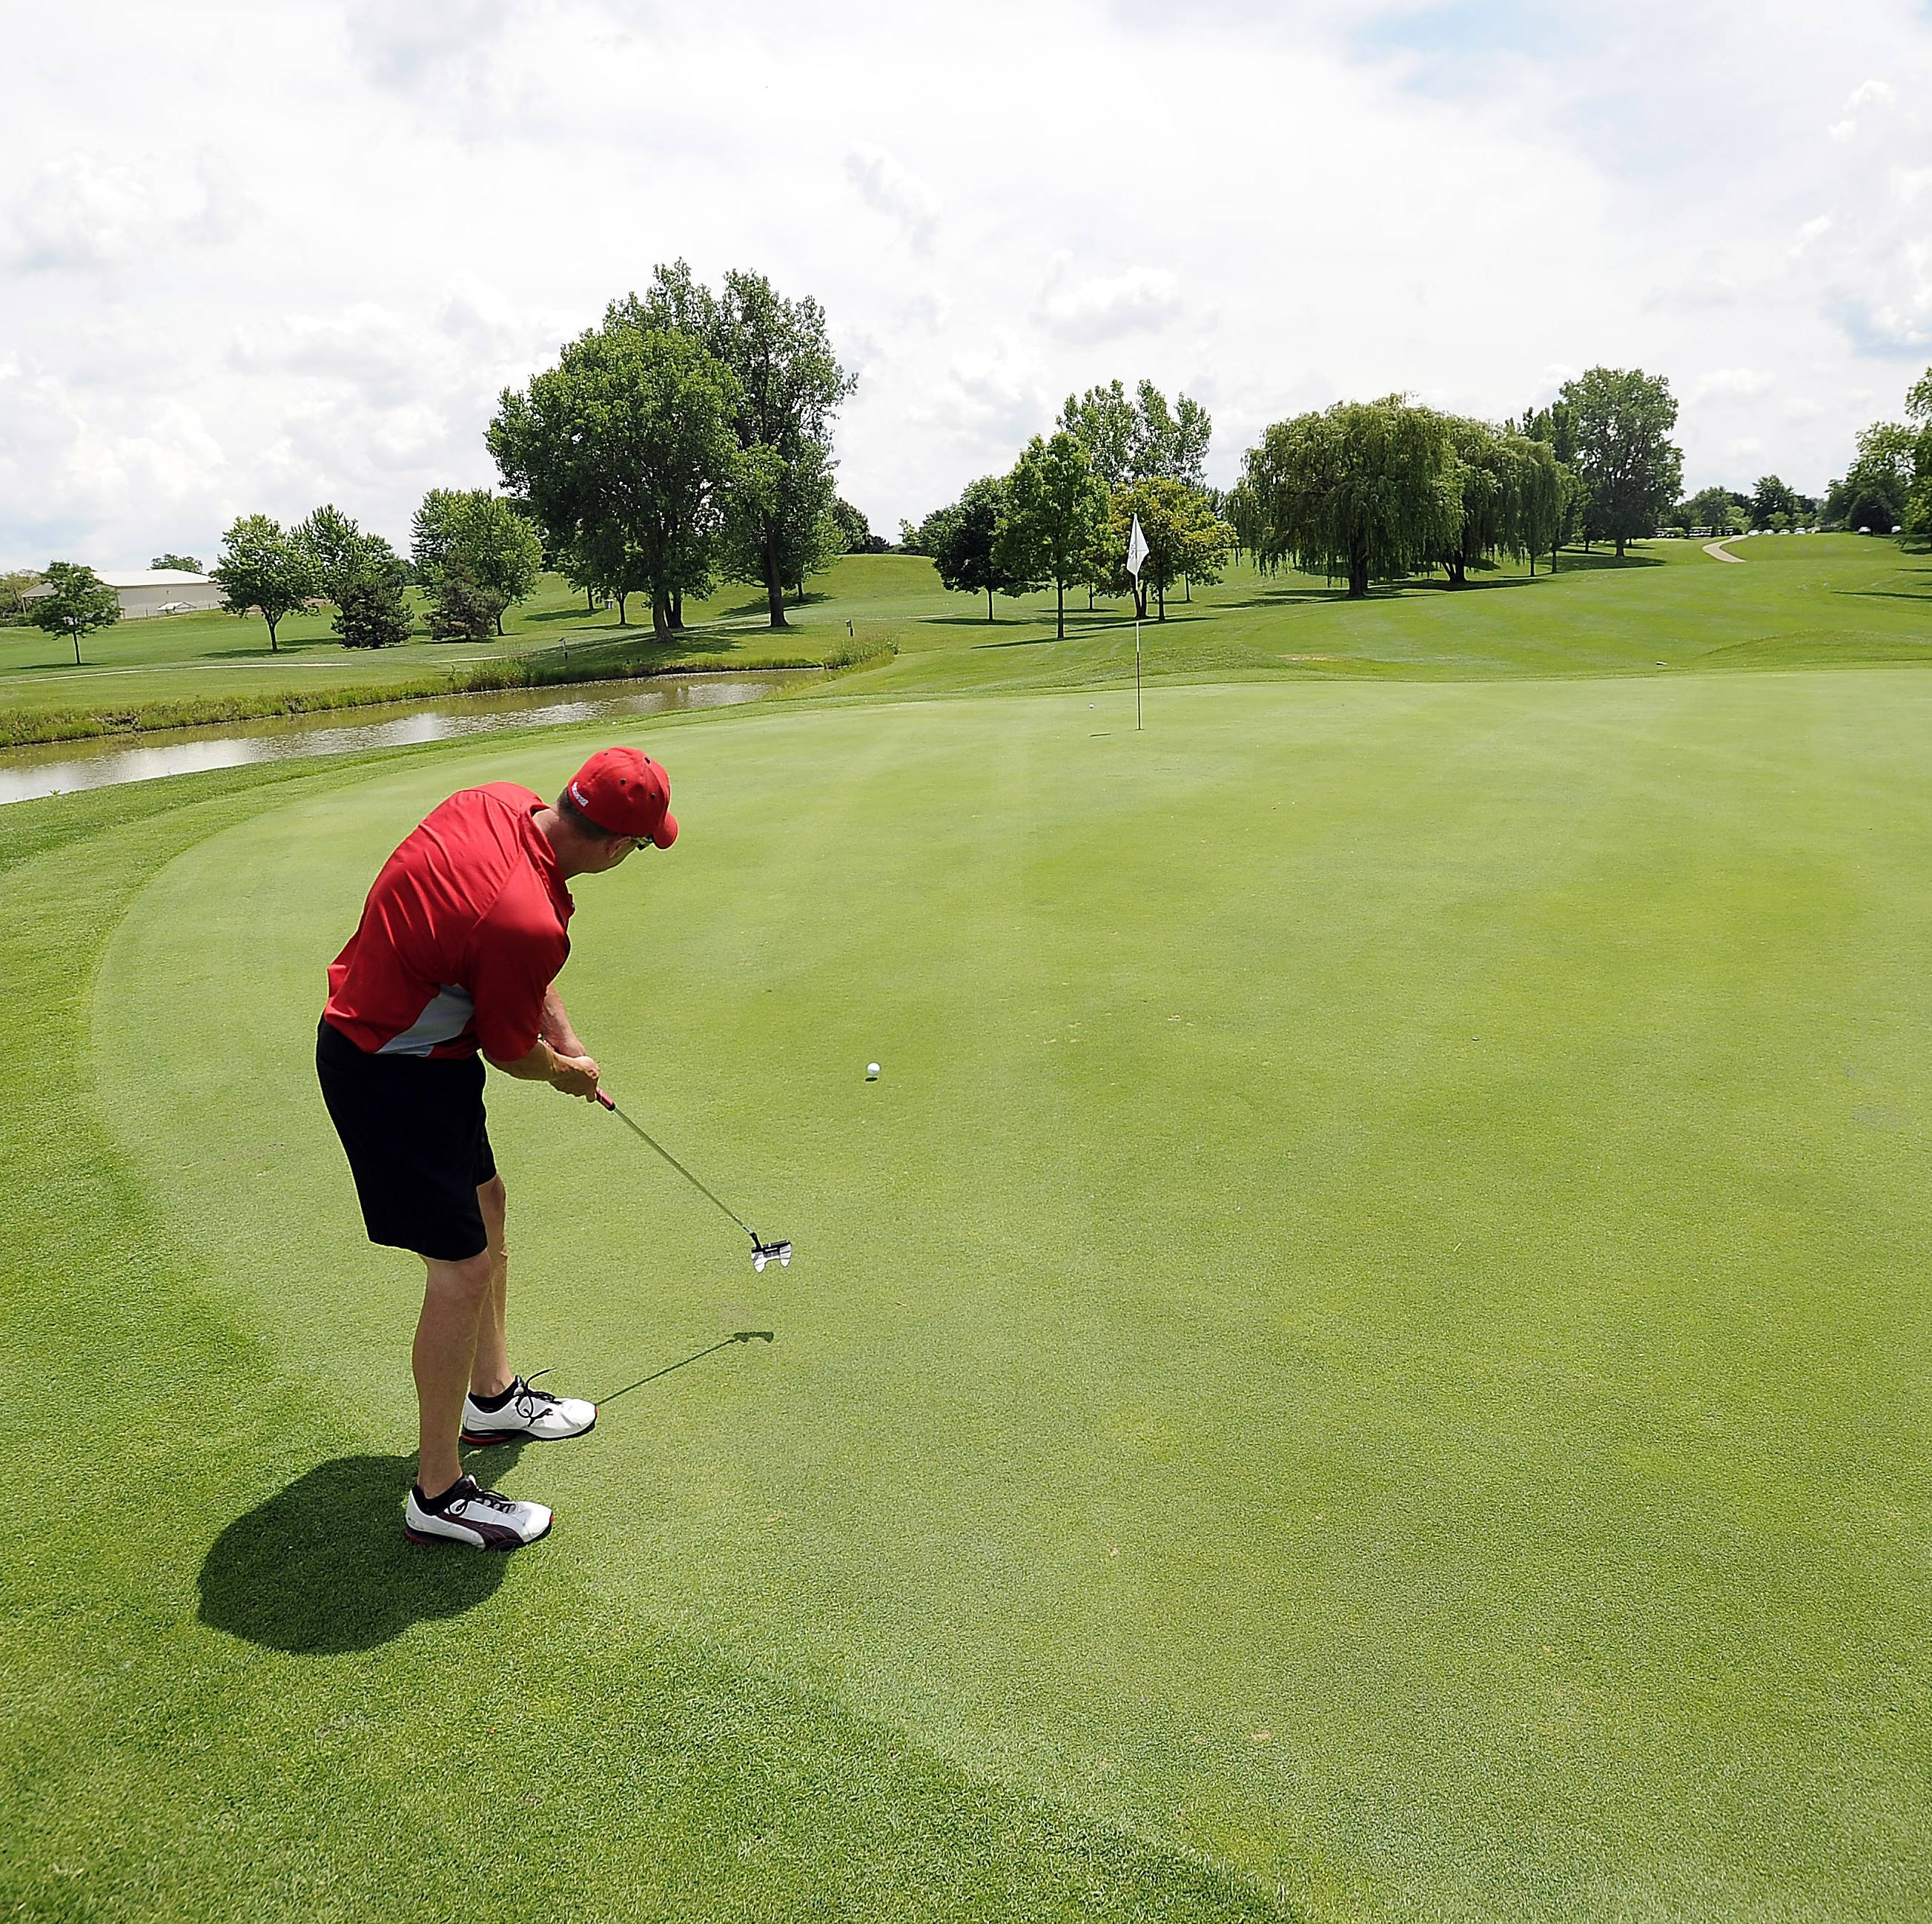 Publicly owned golf courses losing money, and taxpayers pay